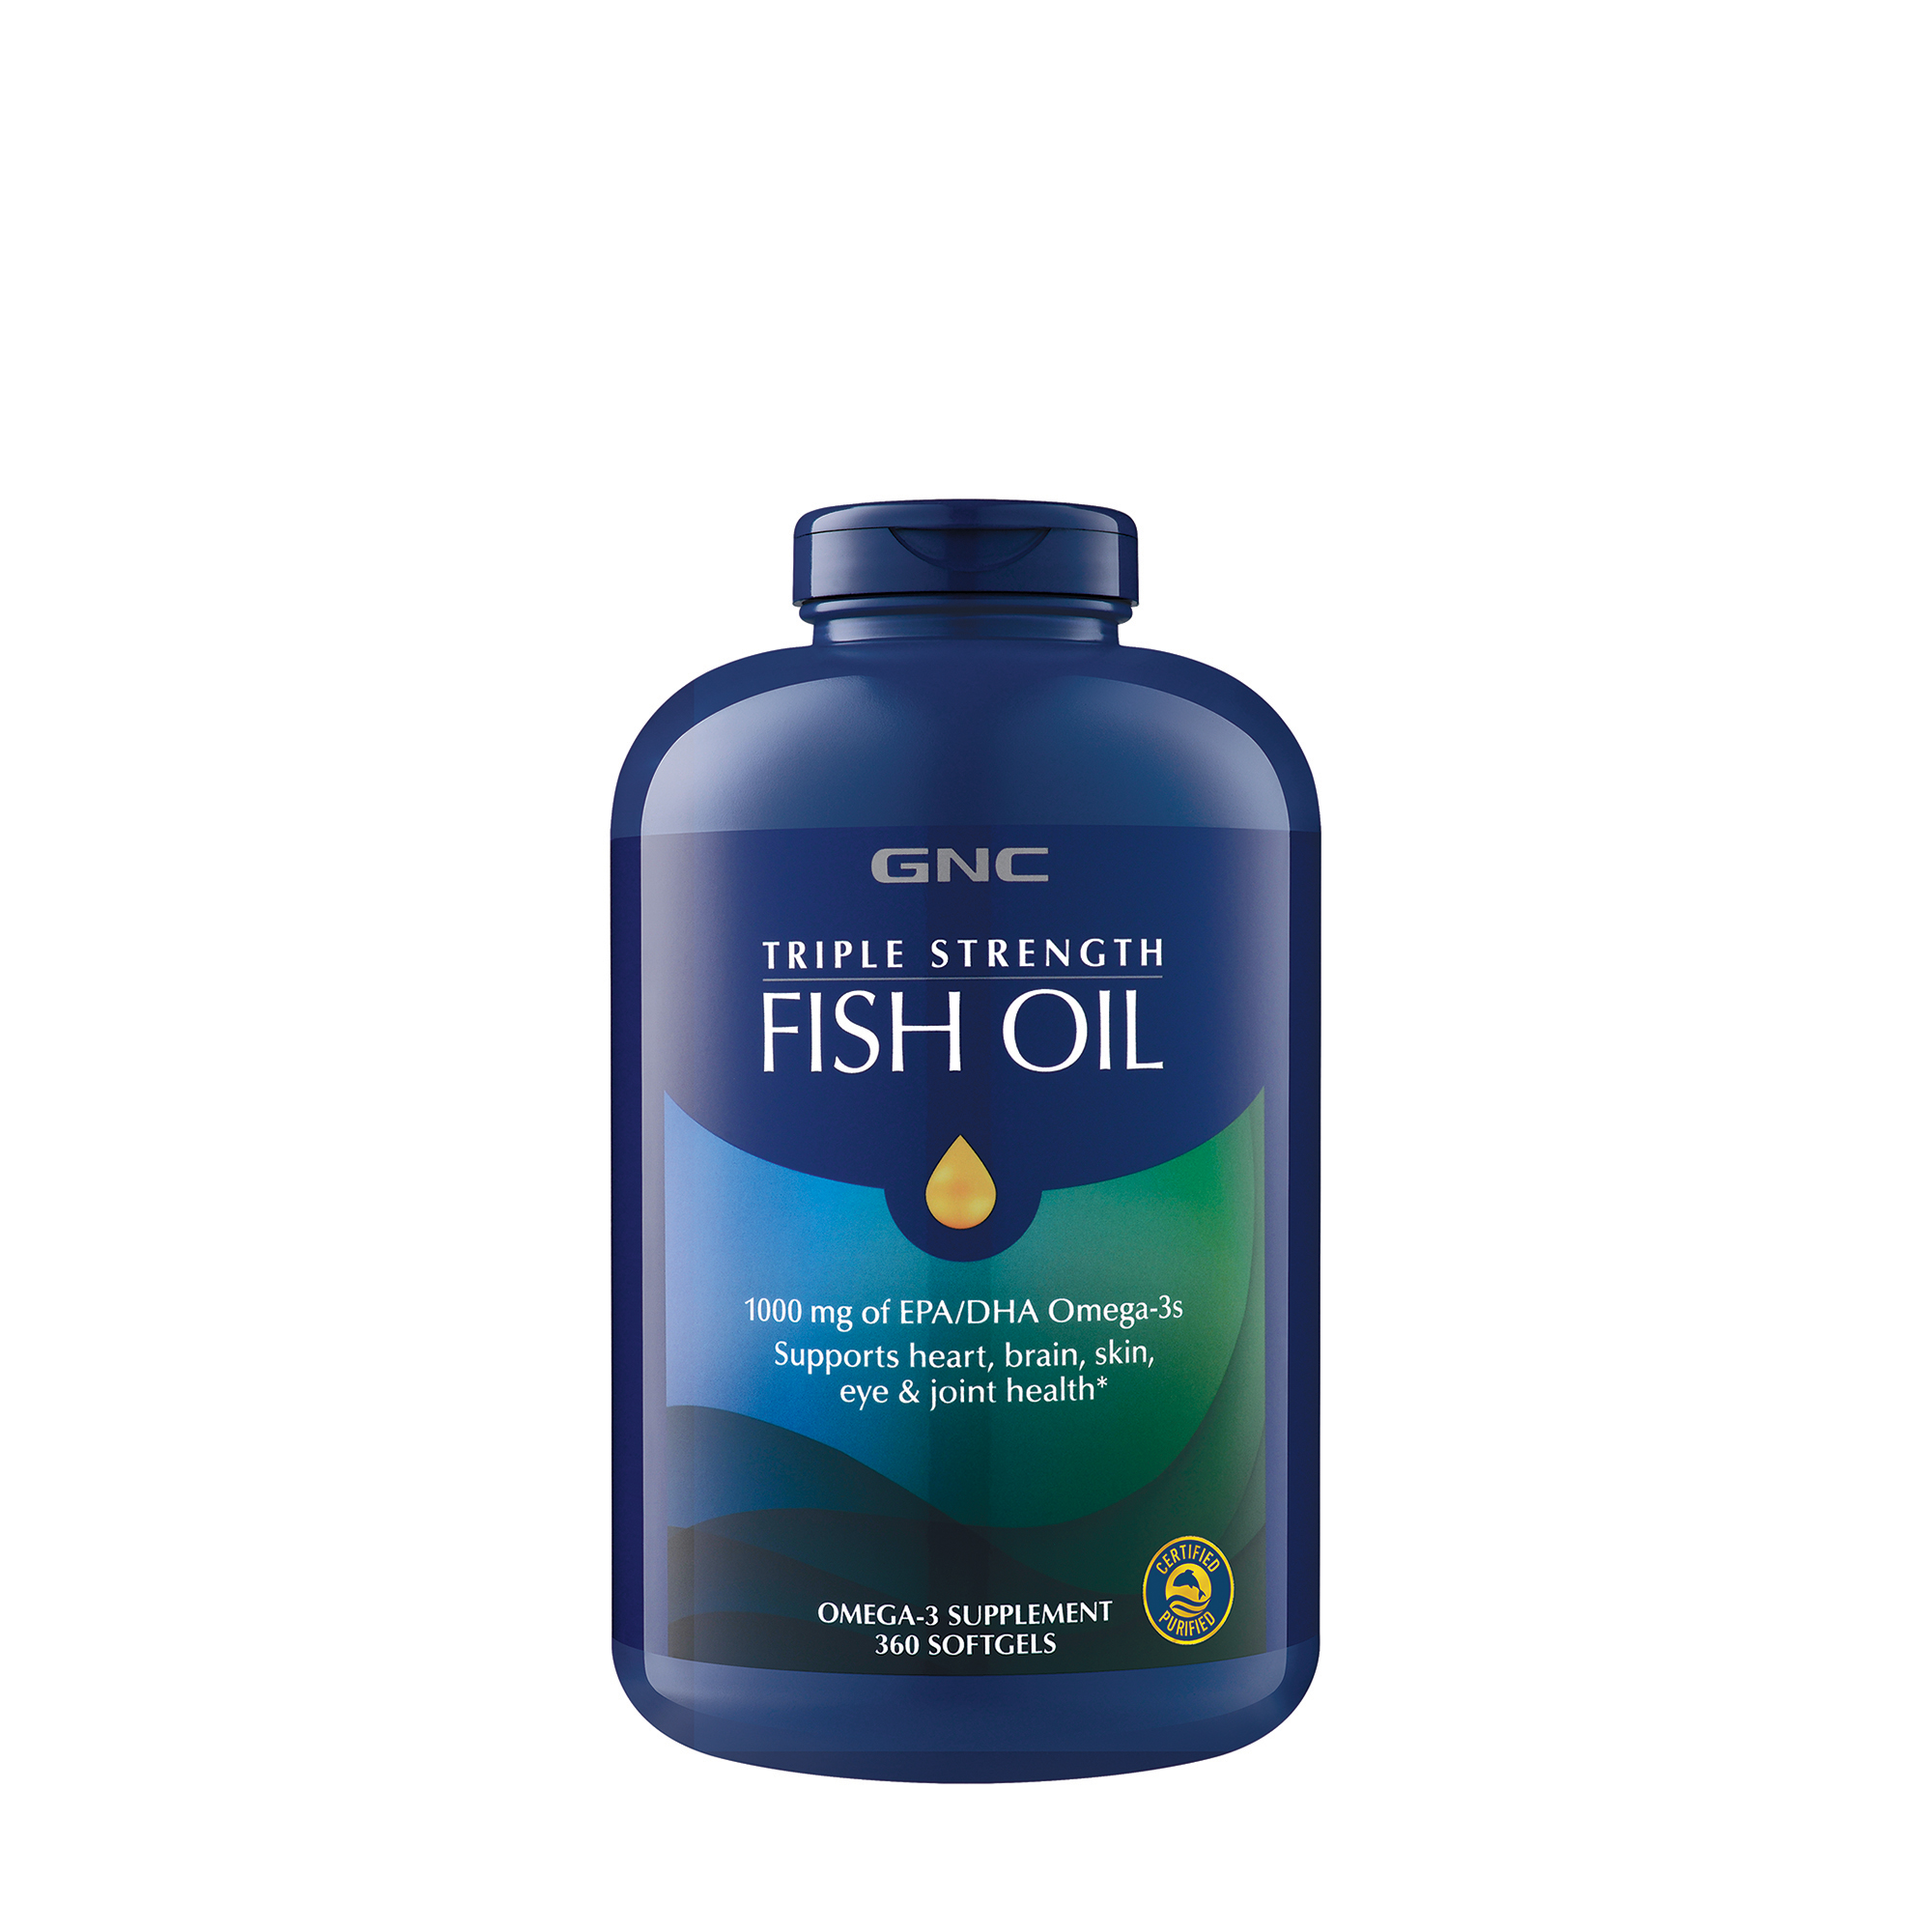 Fish oil as sexual lubricant